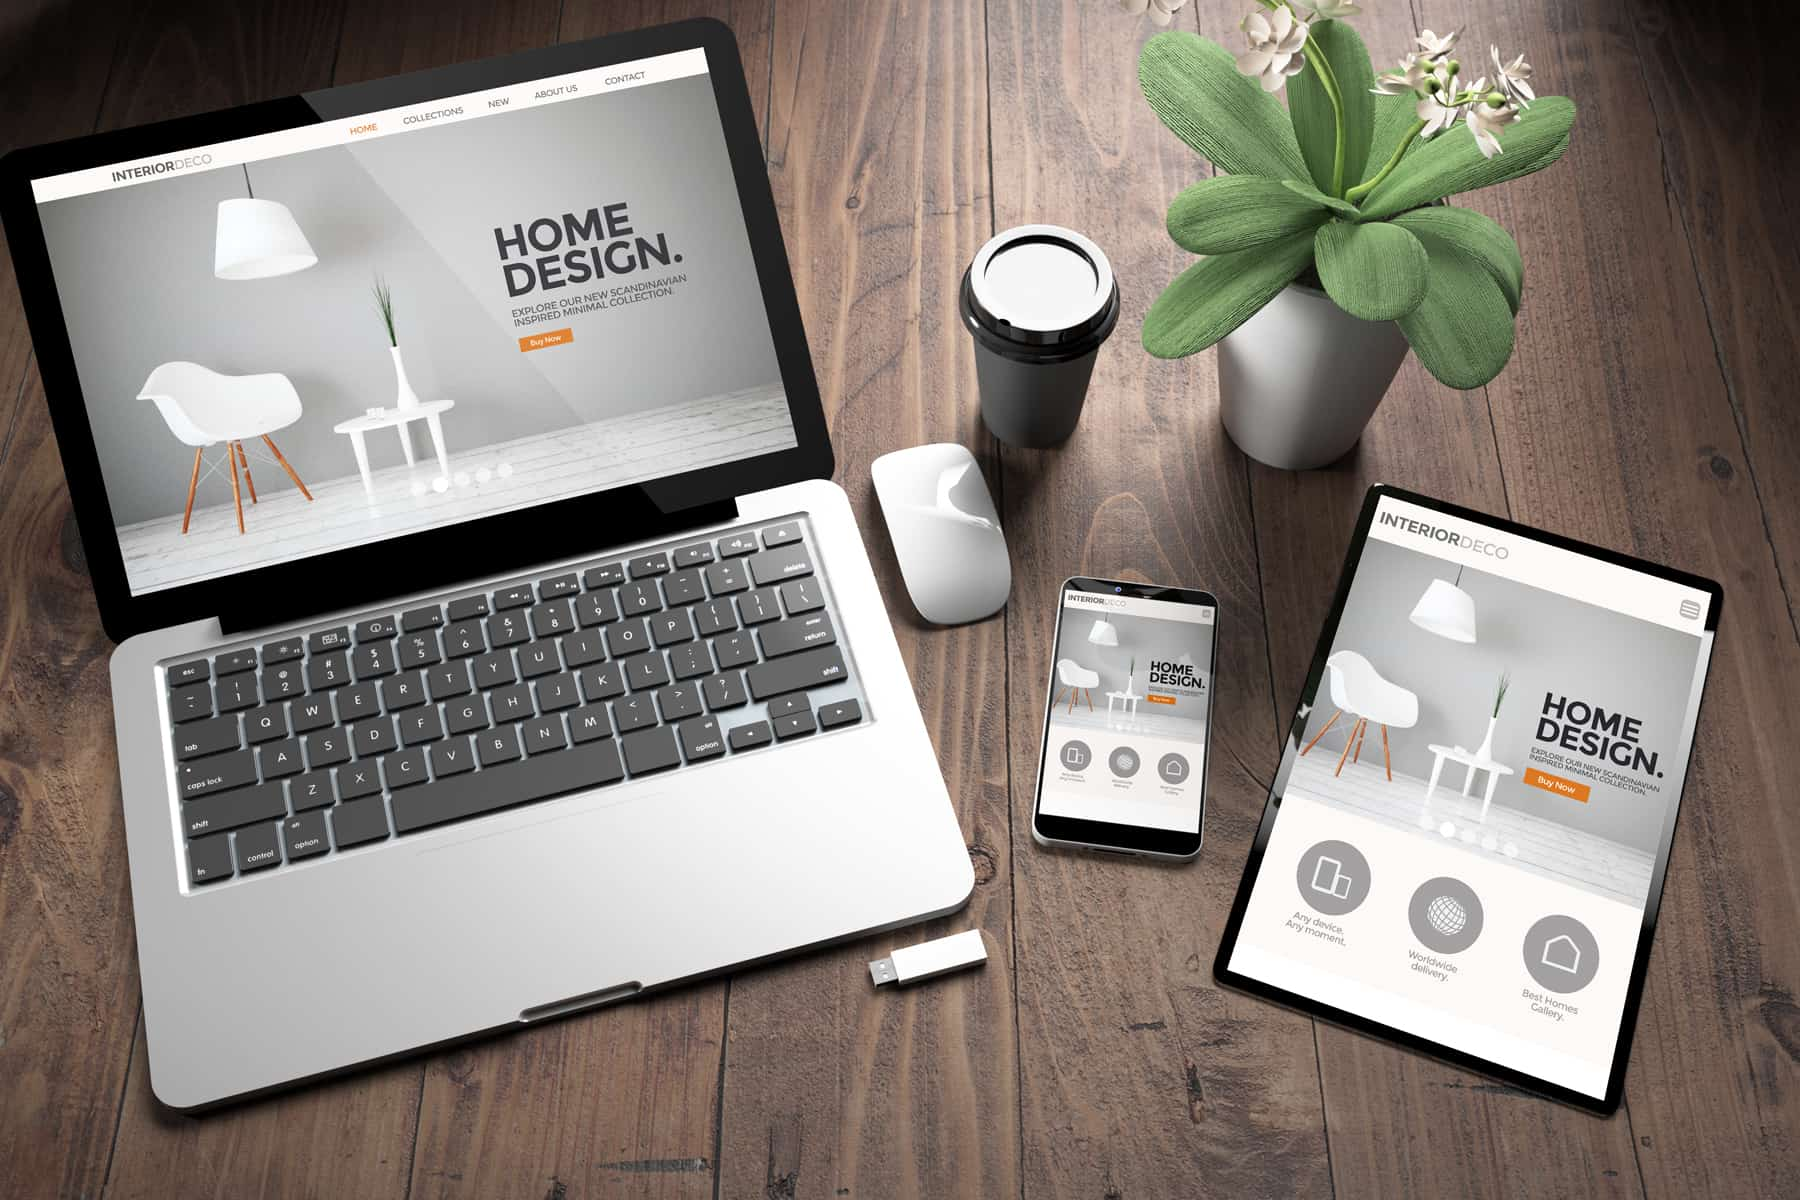 Spread across the wooden table, a laptop, a tablet, and a smartphone display the same home design website pointing at the power of responsive web design.